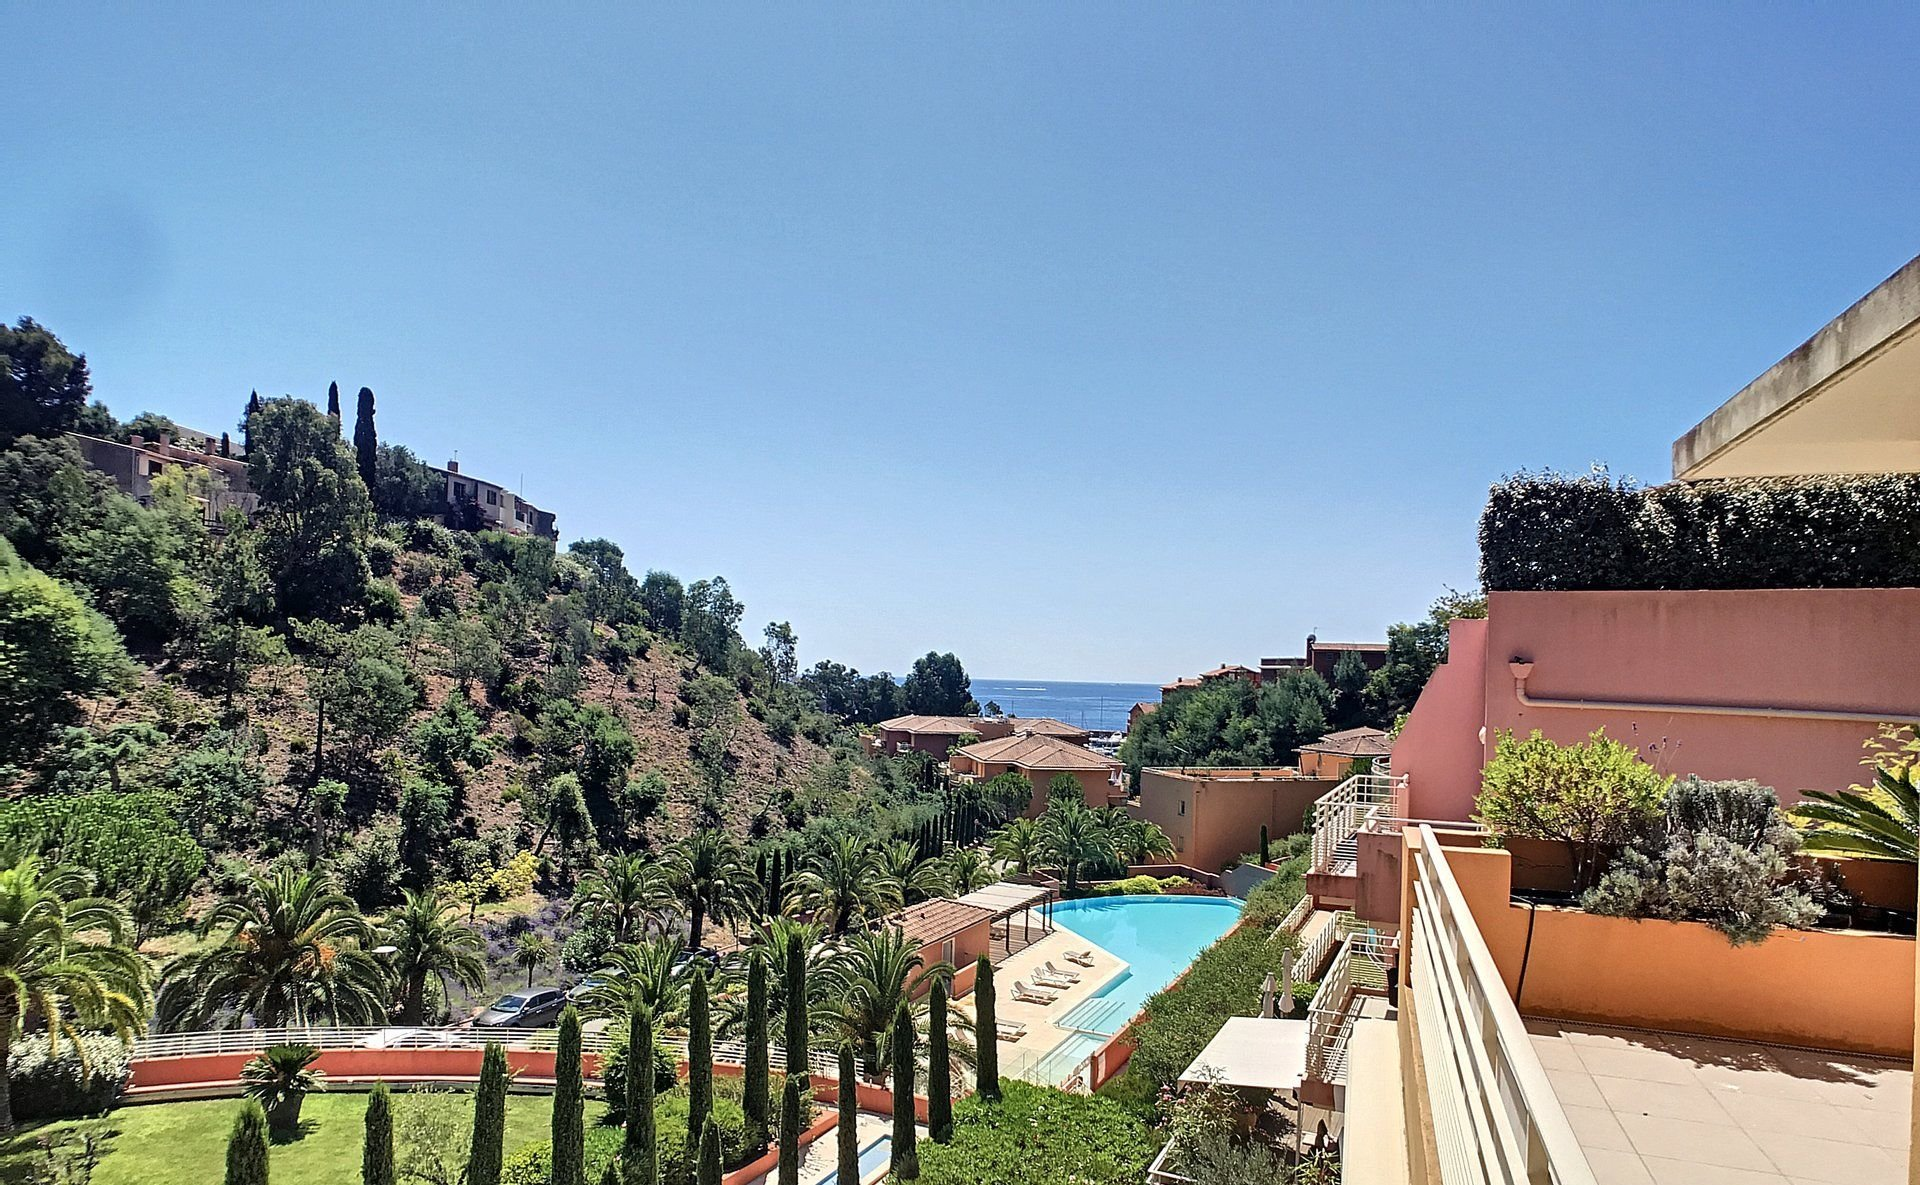 Penthouse in magnificent surroundings with sea view and pool  in Théoule-sur-Mer